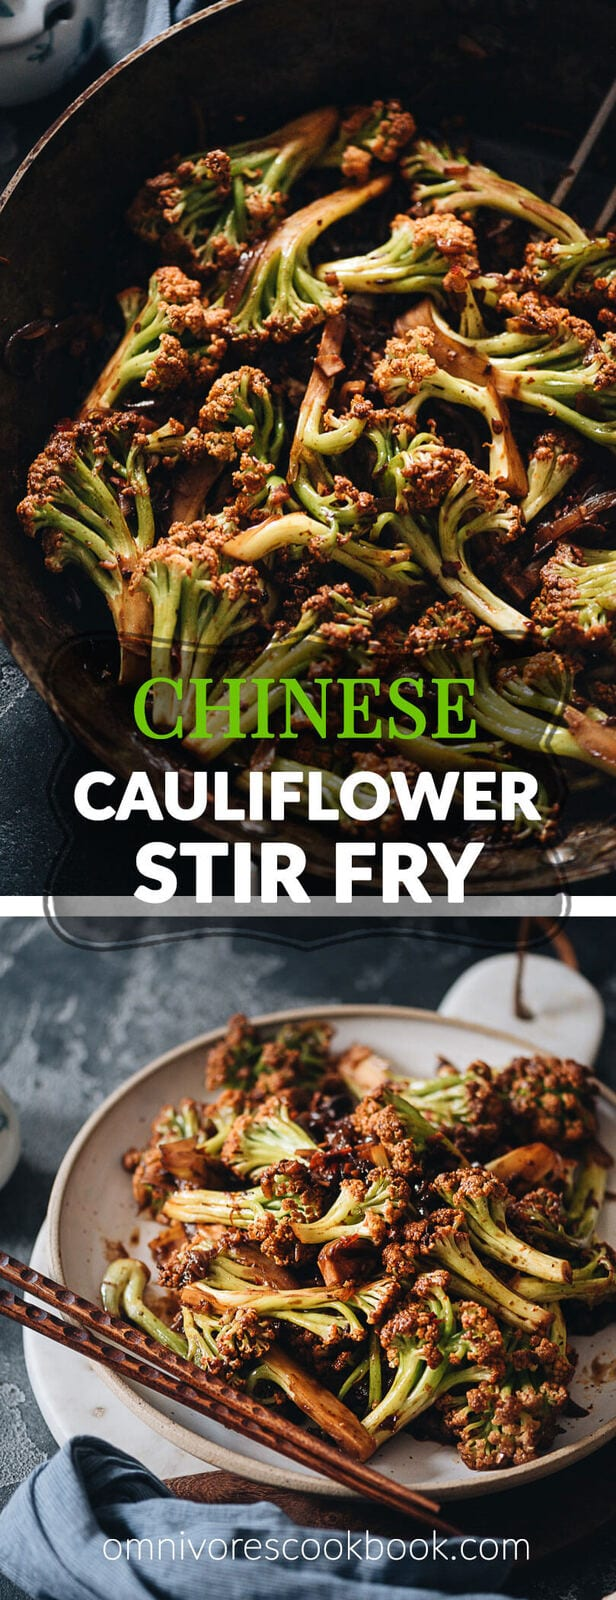 Chinese Cauliflower Stir Fry (干锅菜花) - These crunchy cauliflower bites are cooked in a numbing spicy sauce that is so rich. Even though this recipe is vegan, I've included notes on how to add different types of protein, to make a more substantial dish for your dinner. {Vegan, Gluten-Free Adaptable}